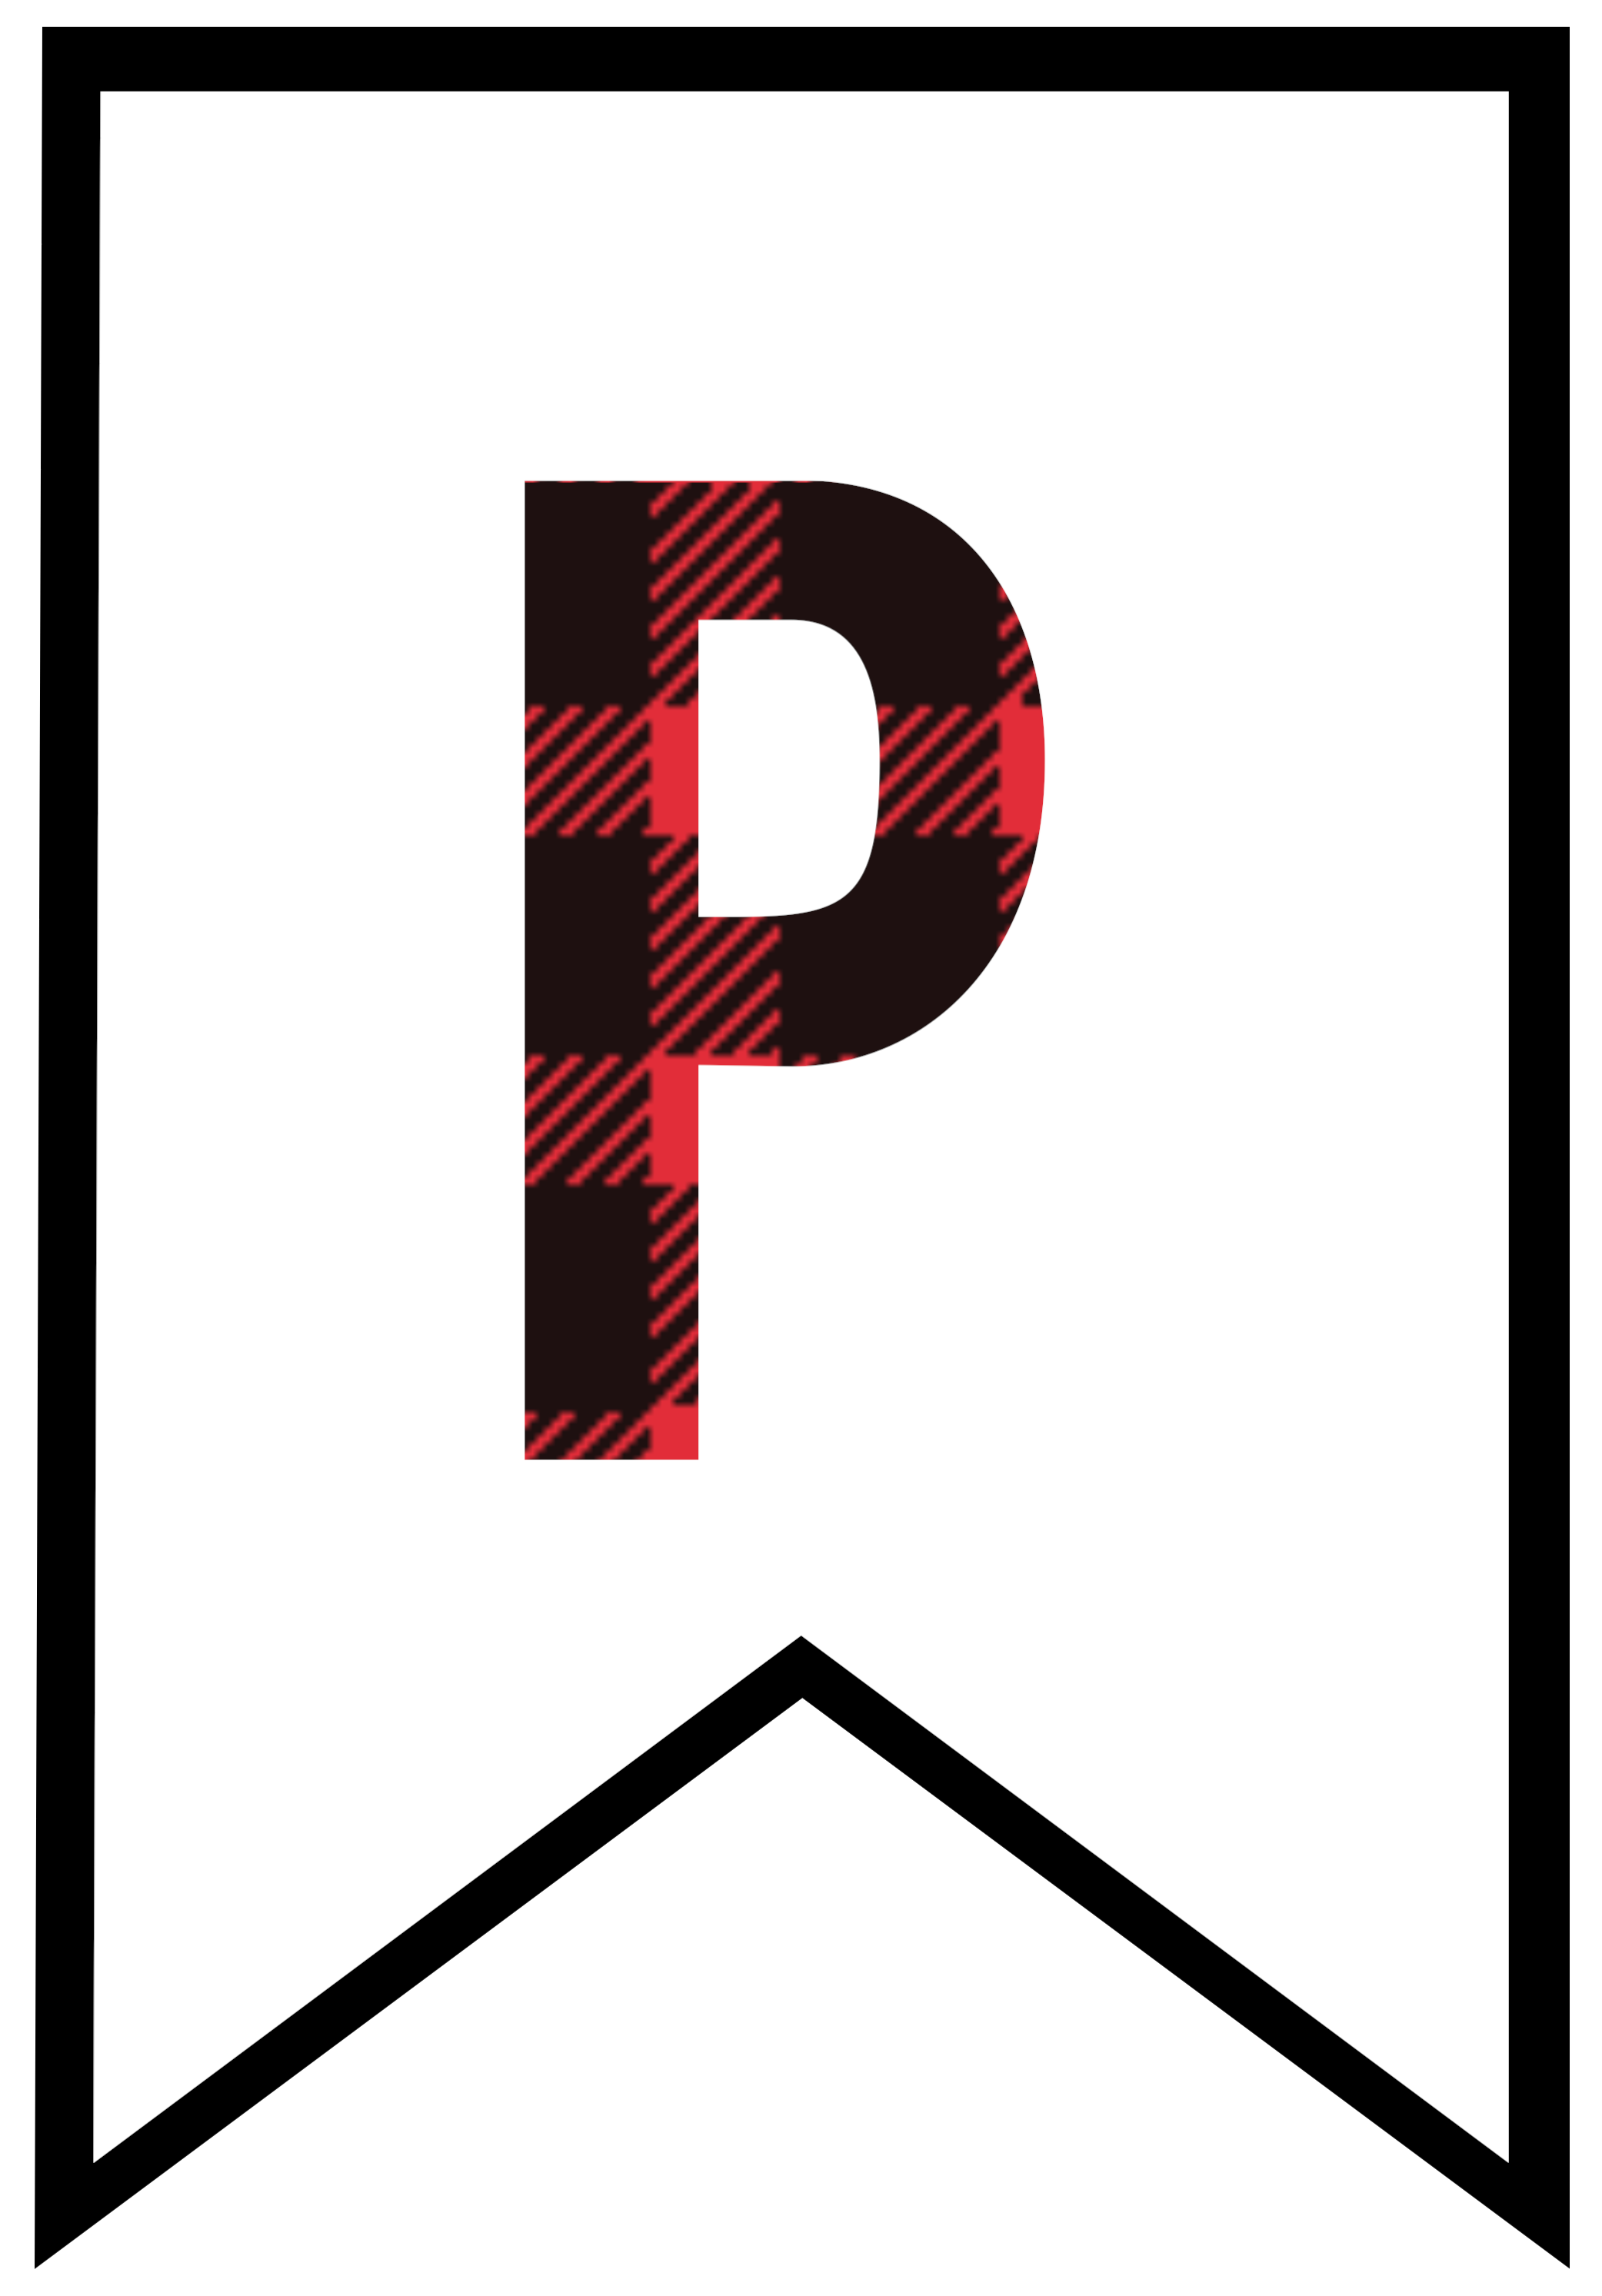 P transparent printable letter. Buffalo plaid free banner